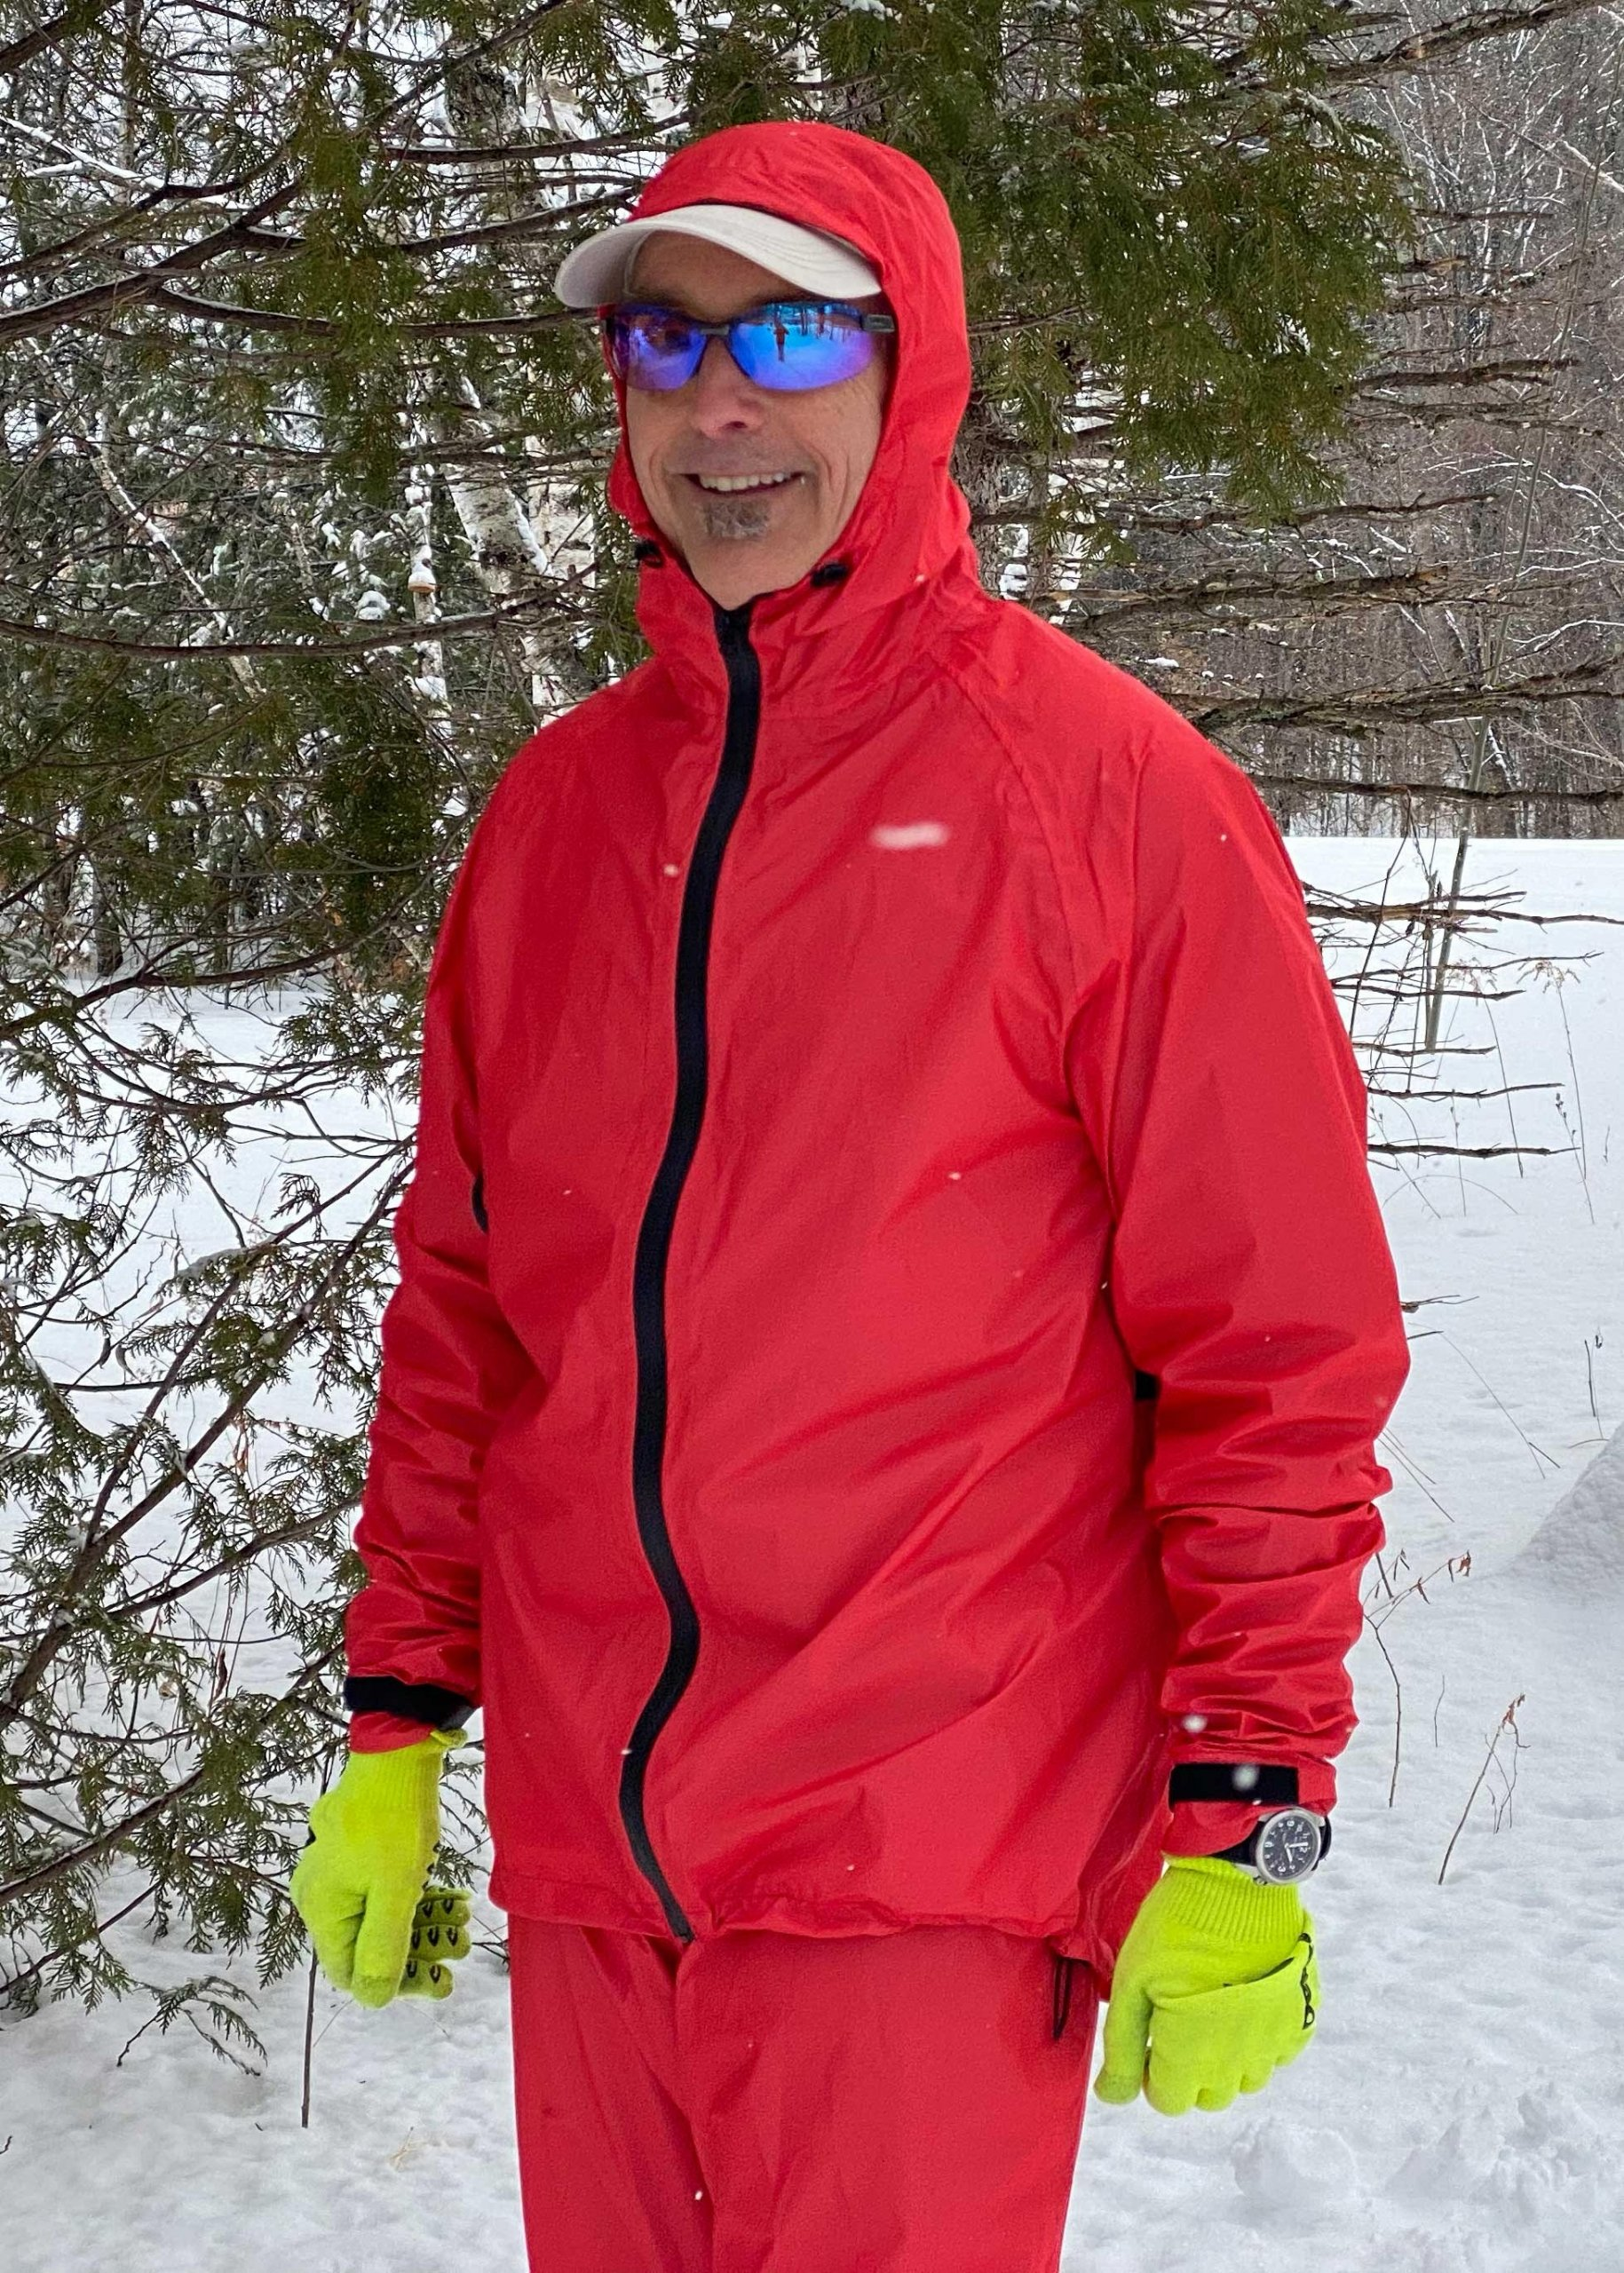 ultralight rain jacket - Enlightened Equipment Visp